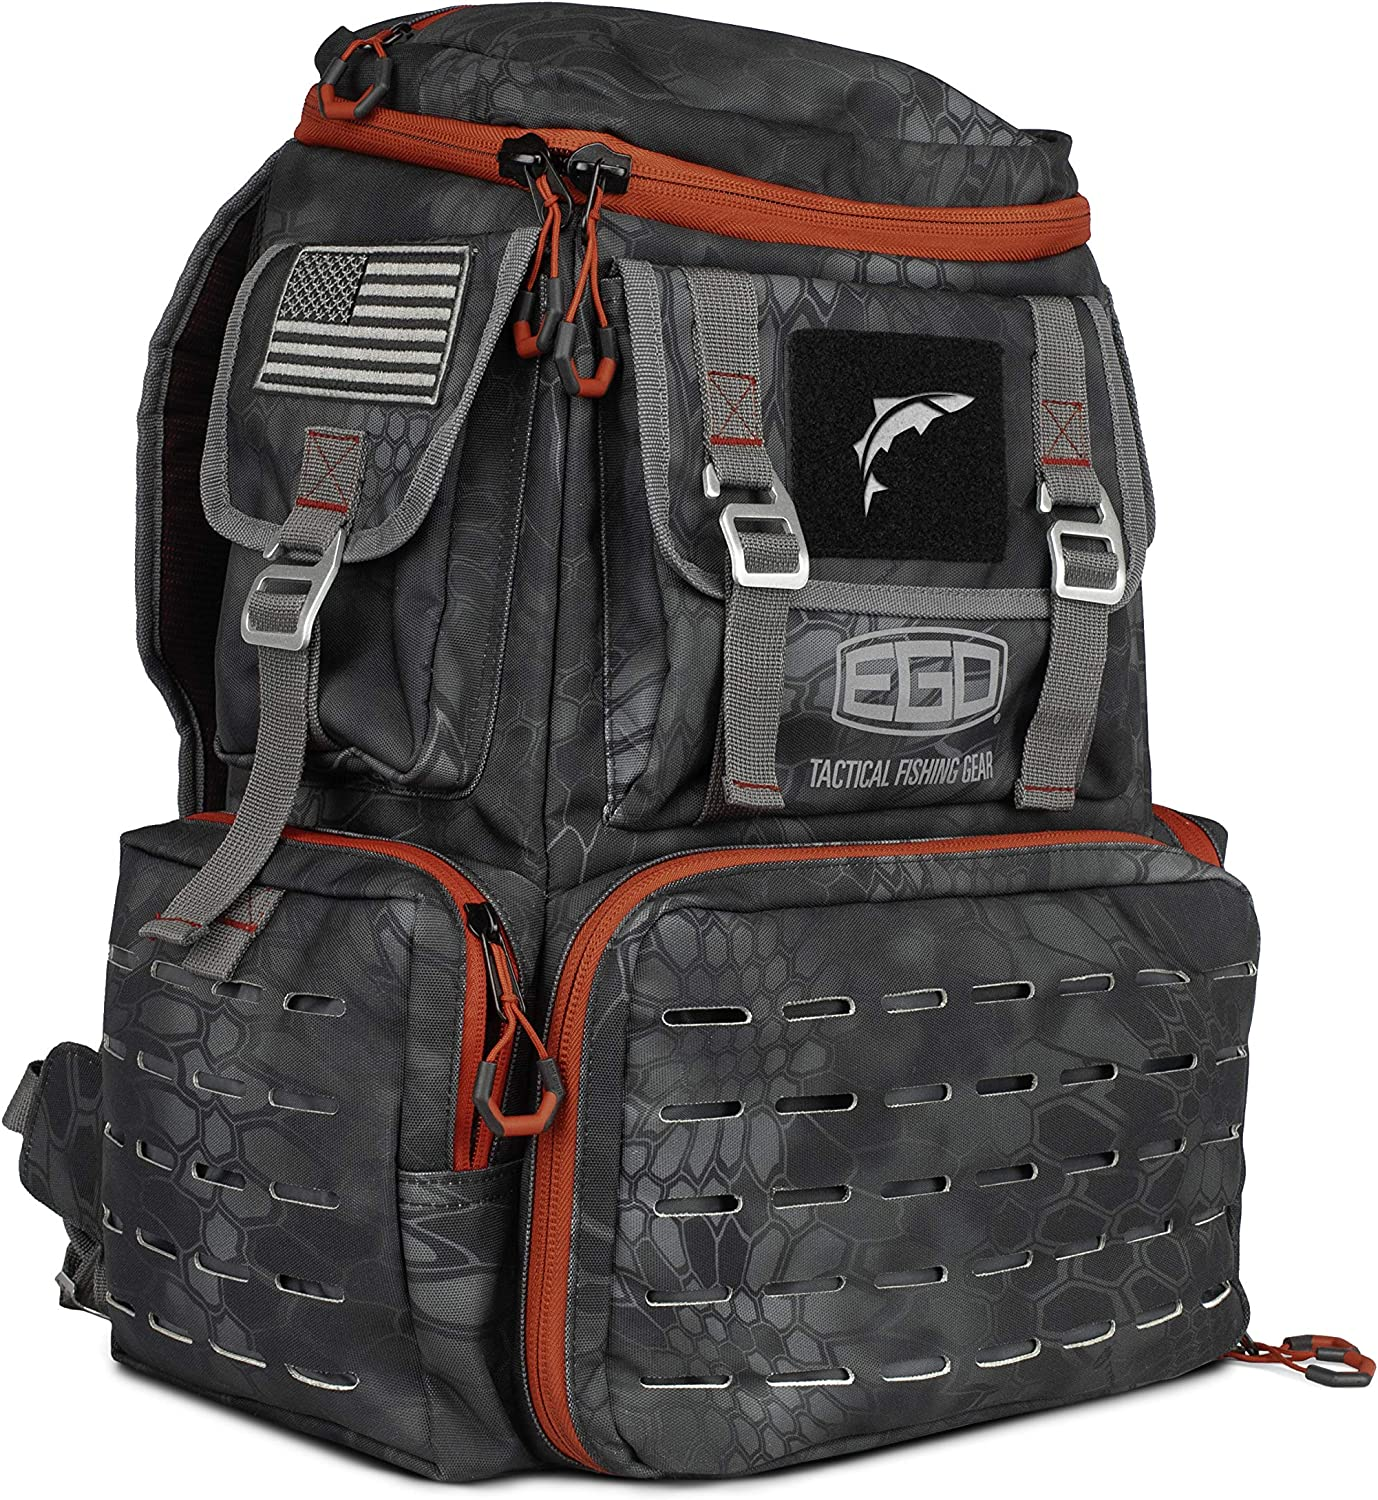 Largest Fishing Tackle Bag